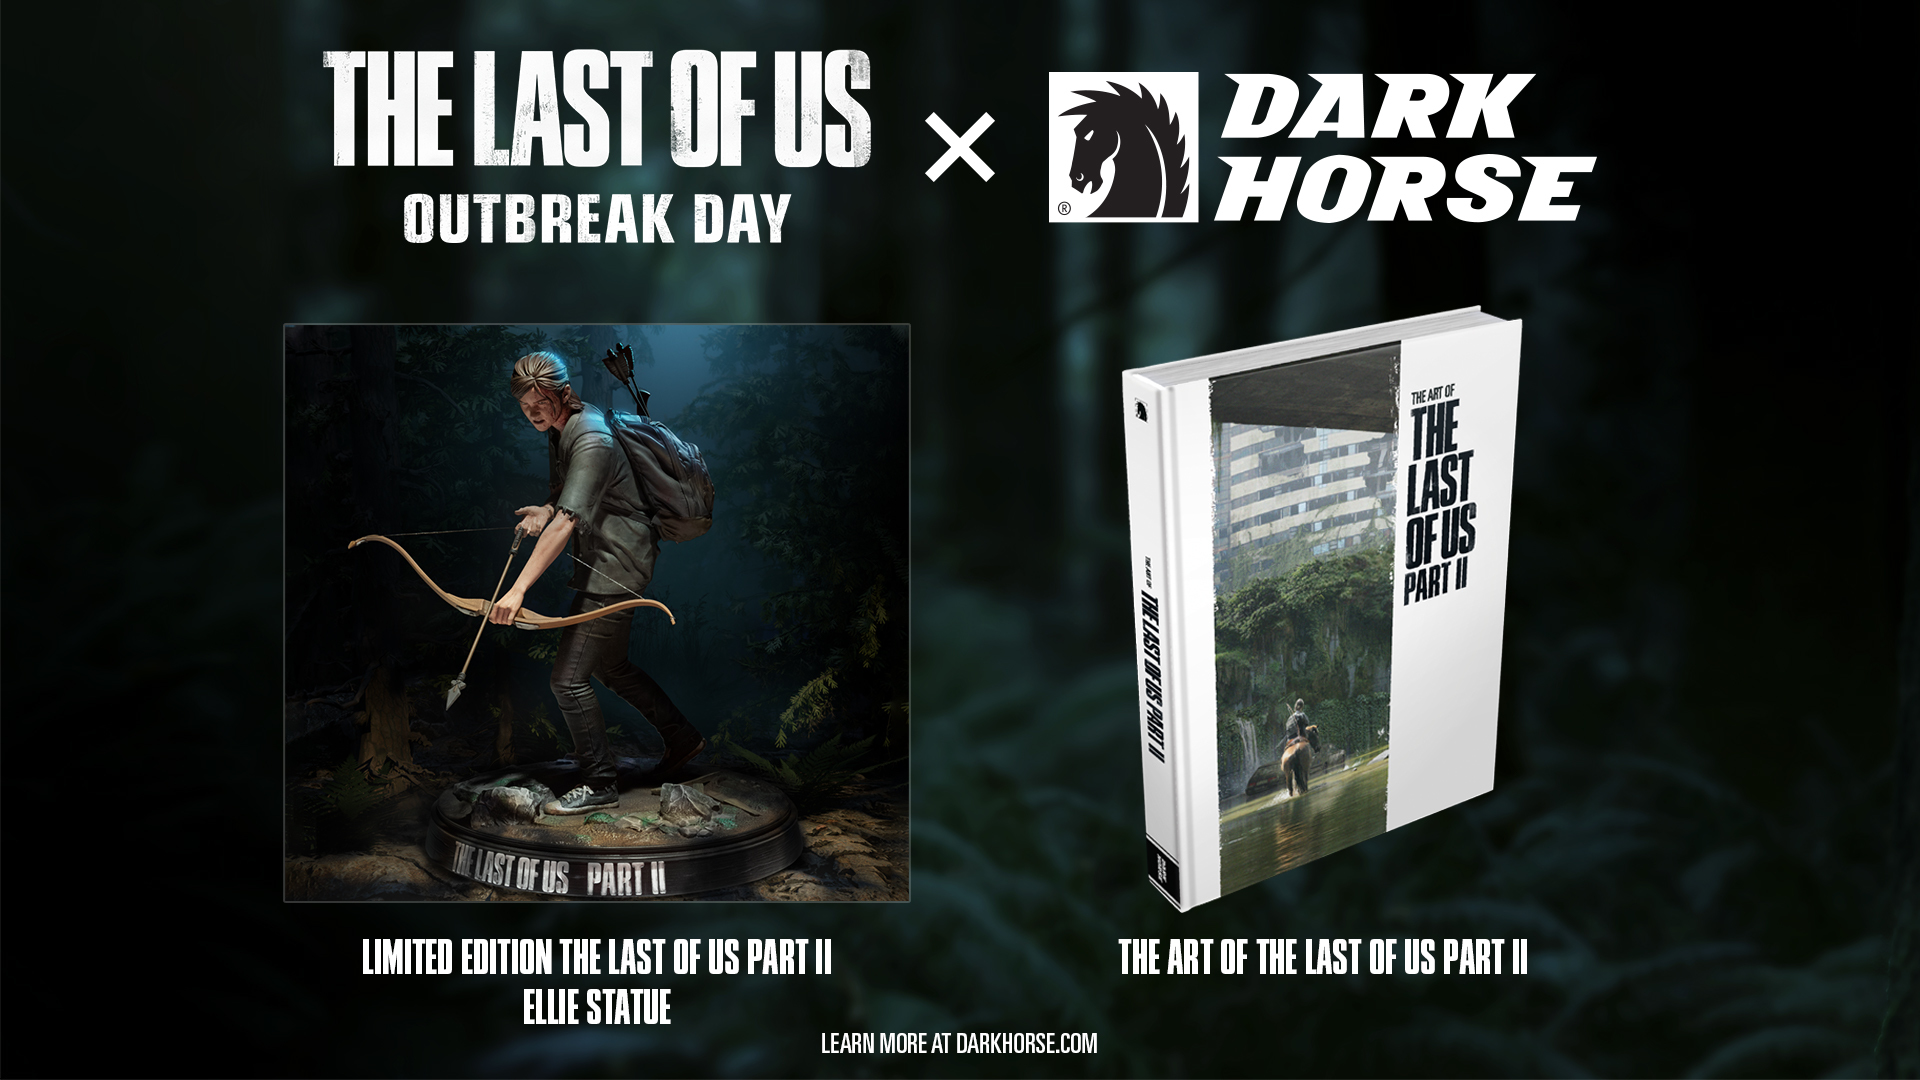 The Last of Us Part II: Outbreak Day 2019 - Image 2